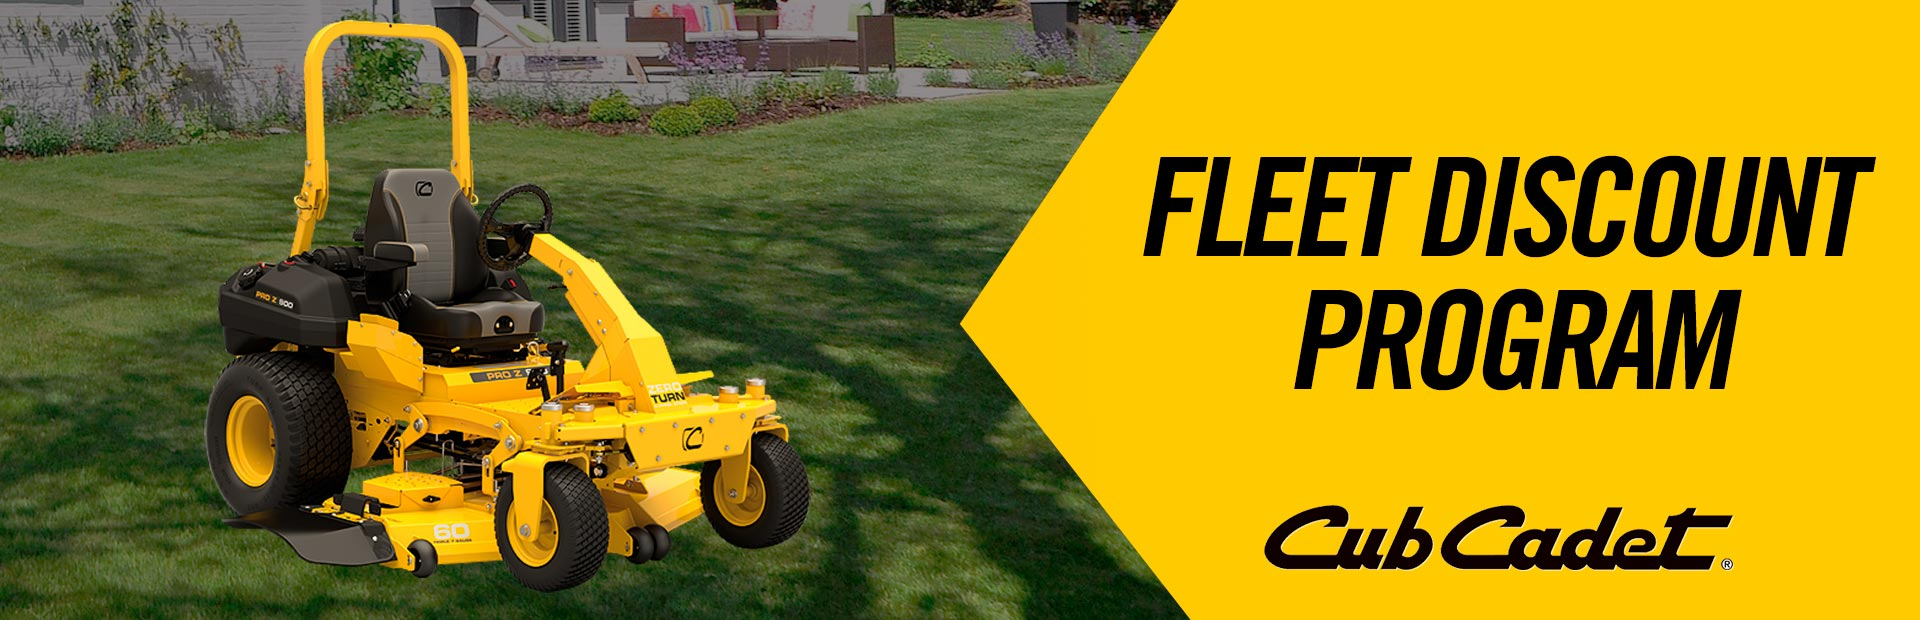 Cub Cadet:  FLEET DISCOUNT PROGRAM